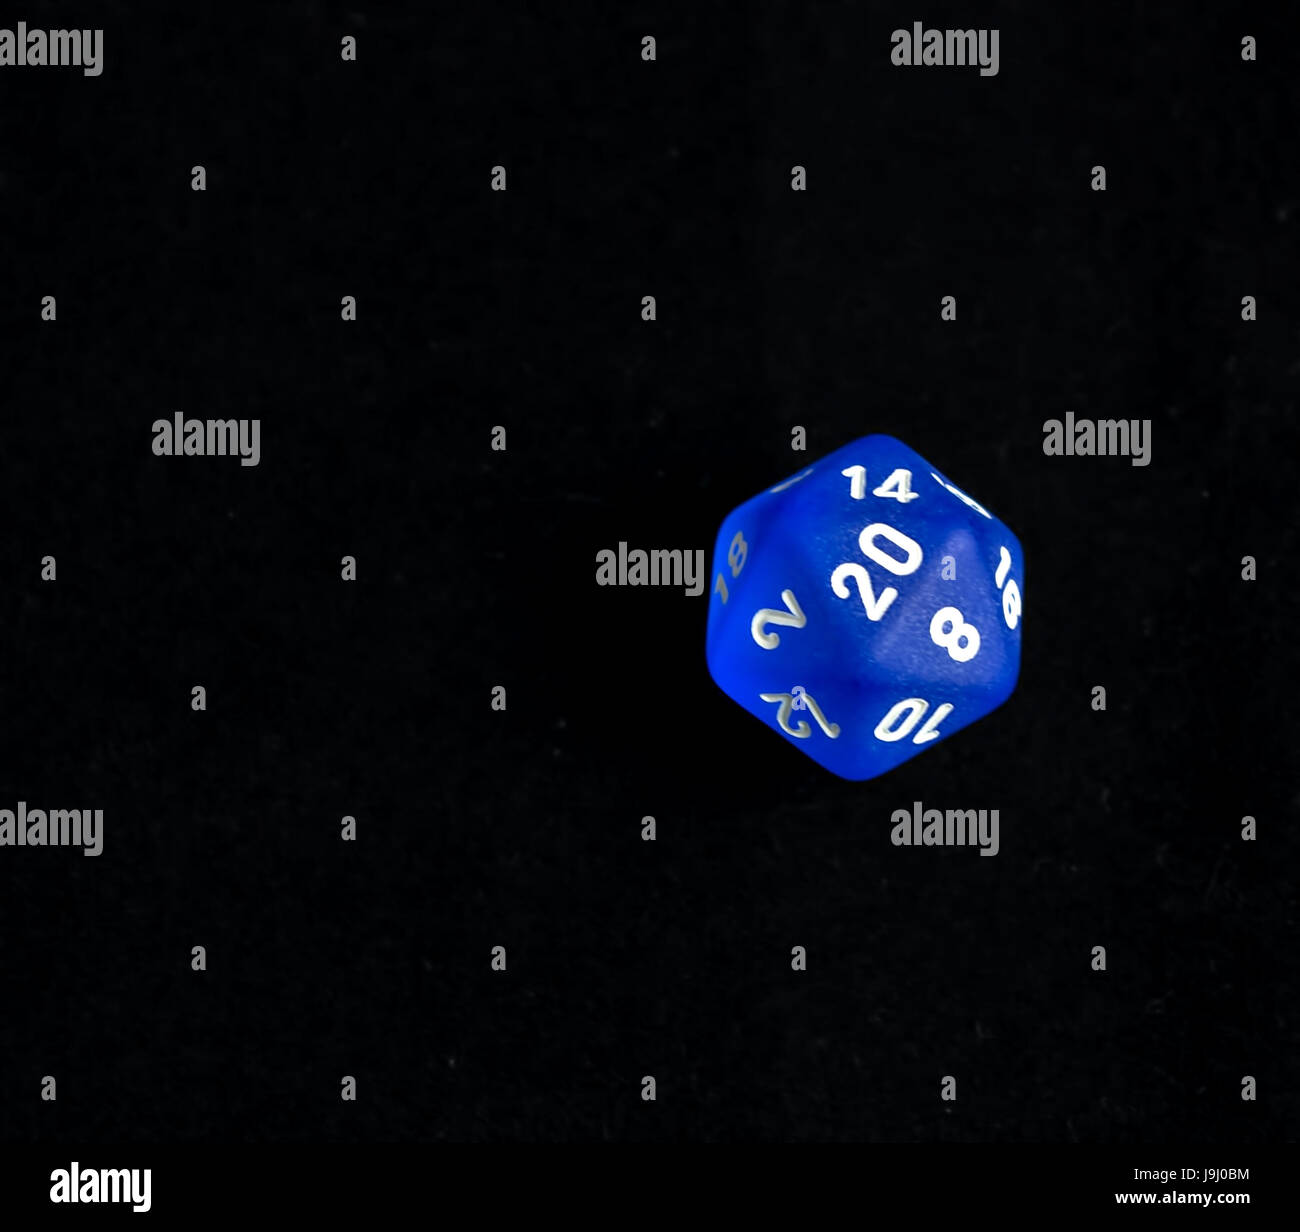 Blue d20 critical success roll RPG polyhedral game dice - Stock Image